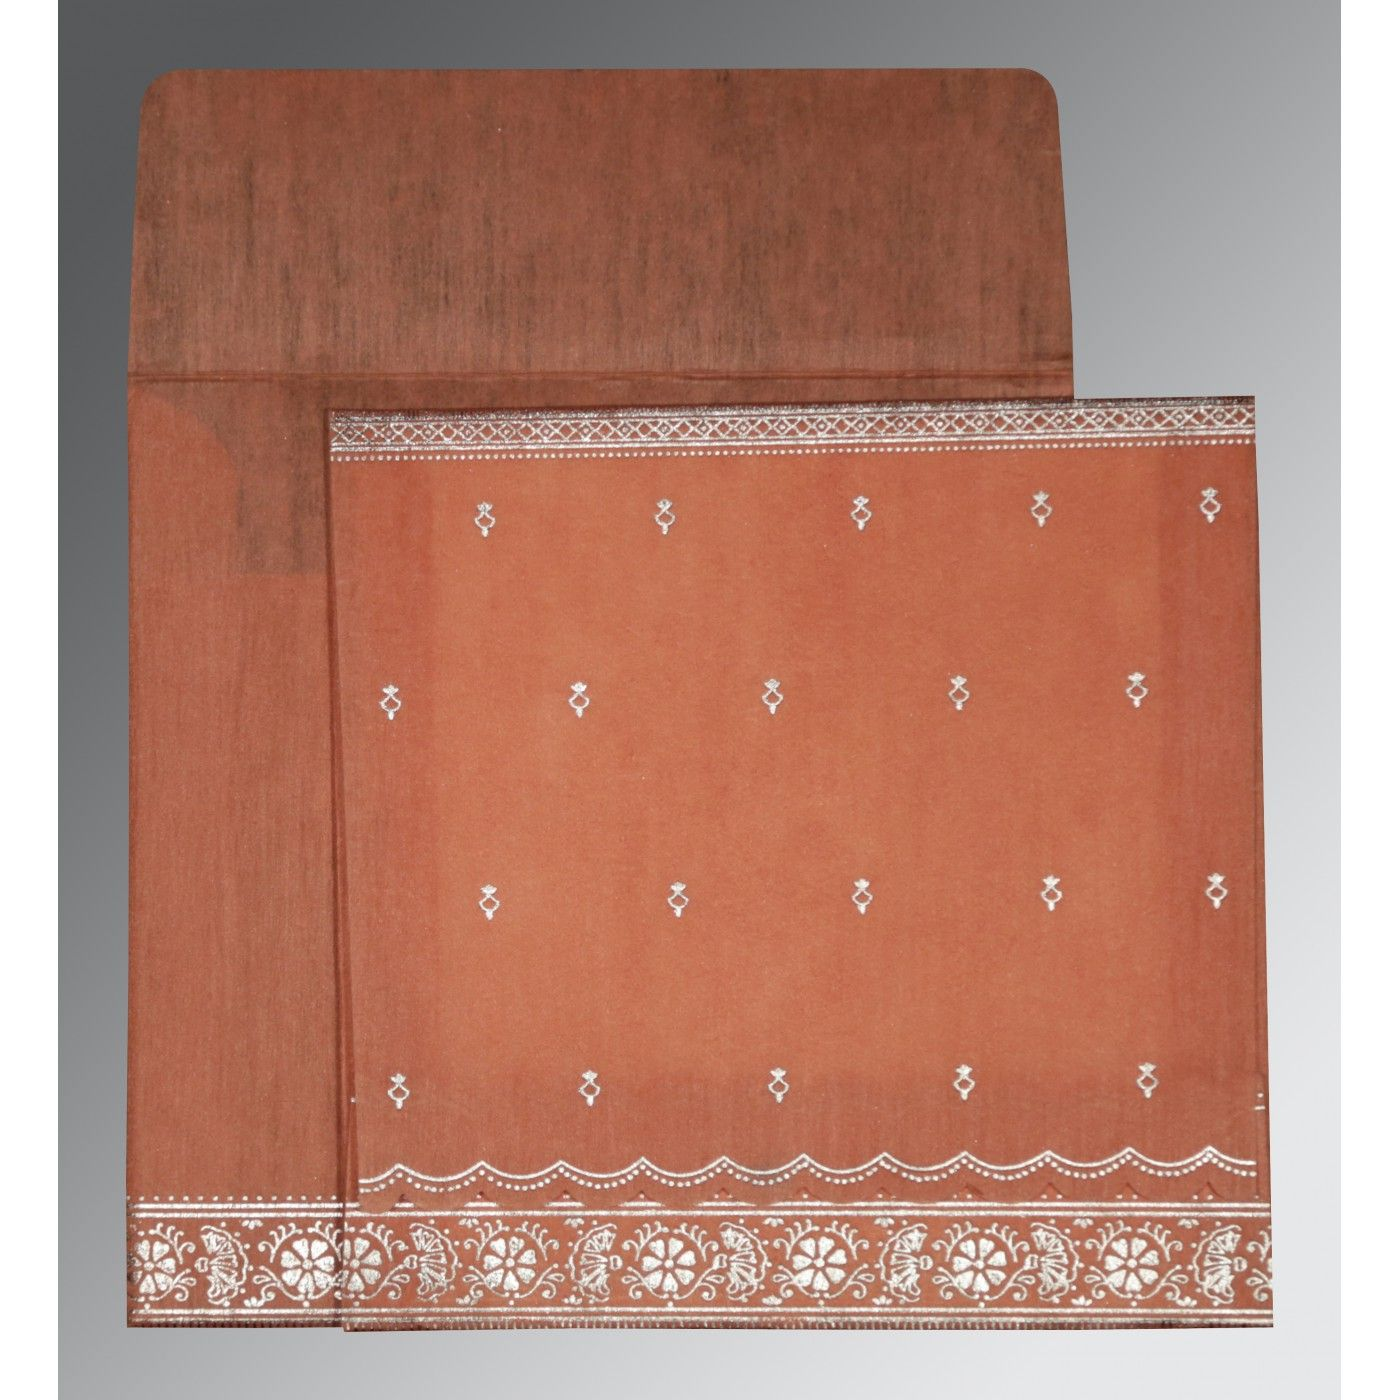 CORAL WOOLY FOIL STAMPED WEDDING CARD : CW-8242L - IndianWeddingCards